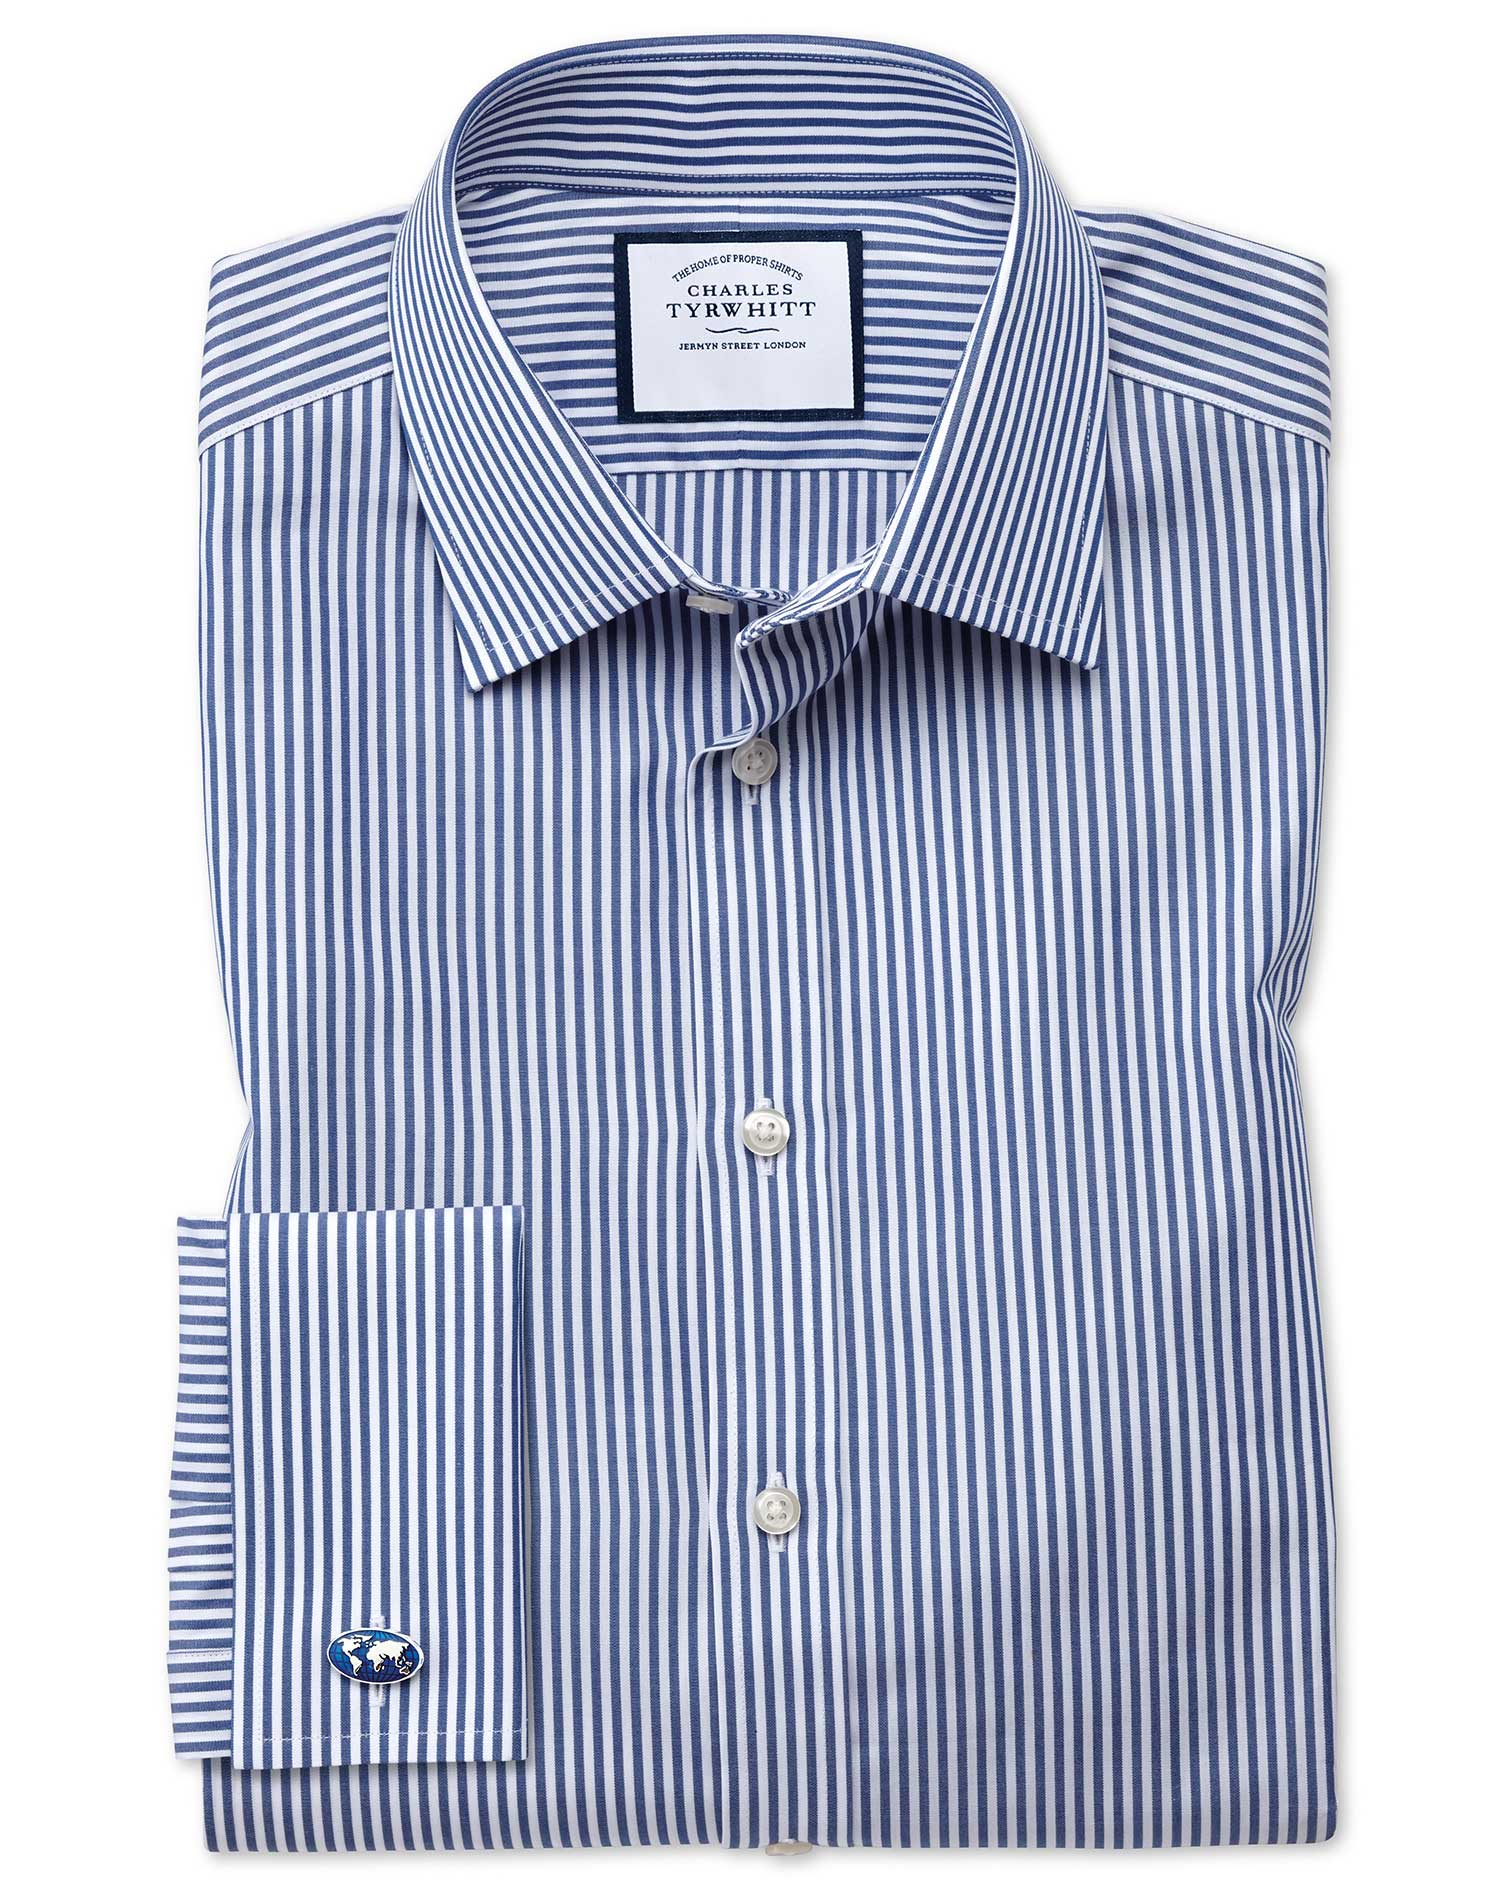 Extra Slim Fit Bengal Stripe Navy Blue Cotton Formal Shirt Double Cuff Size 15.5/35 by Charles Tyrwh